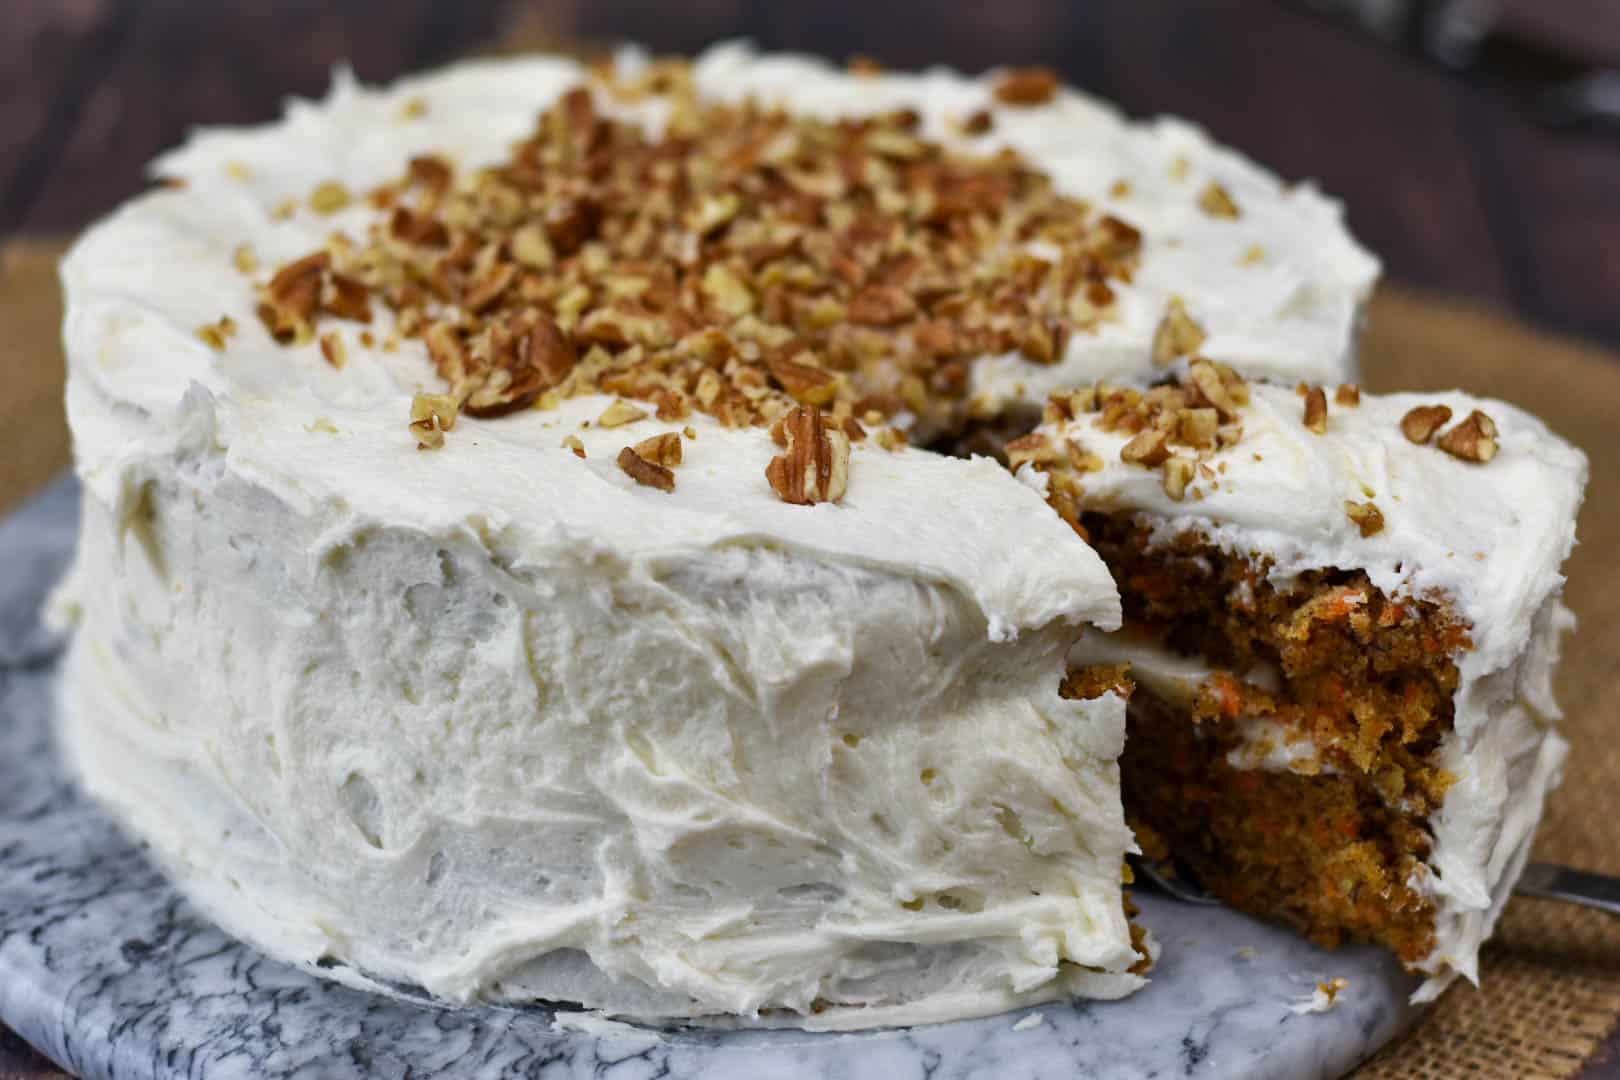 slice of carrot cake being removed from cake